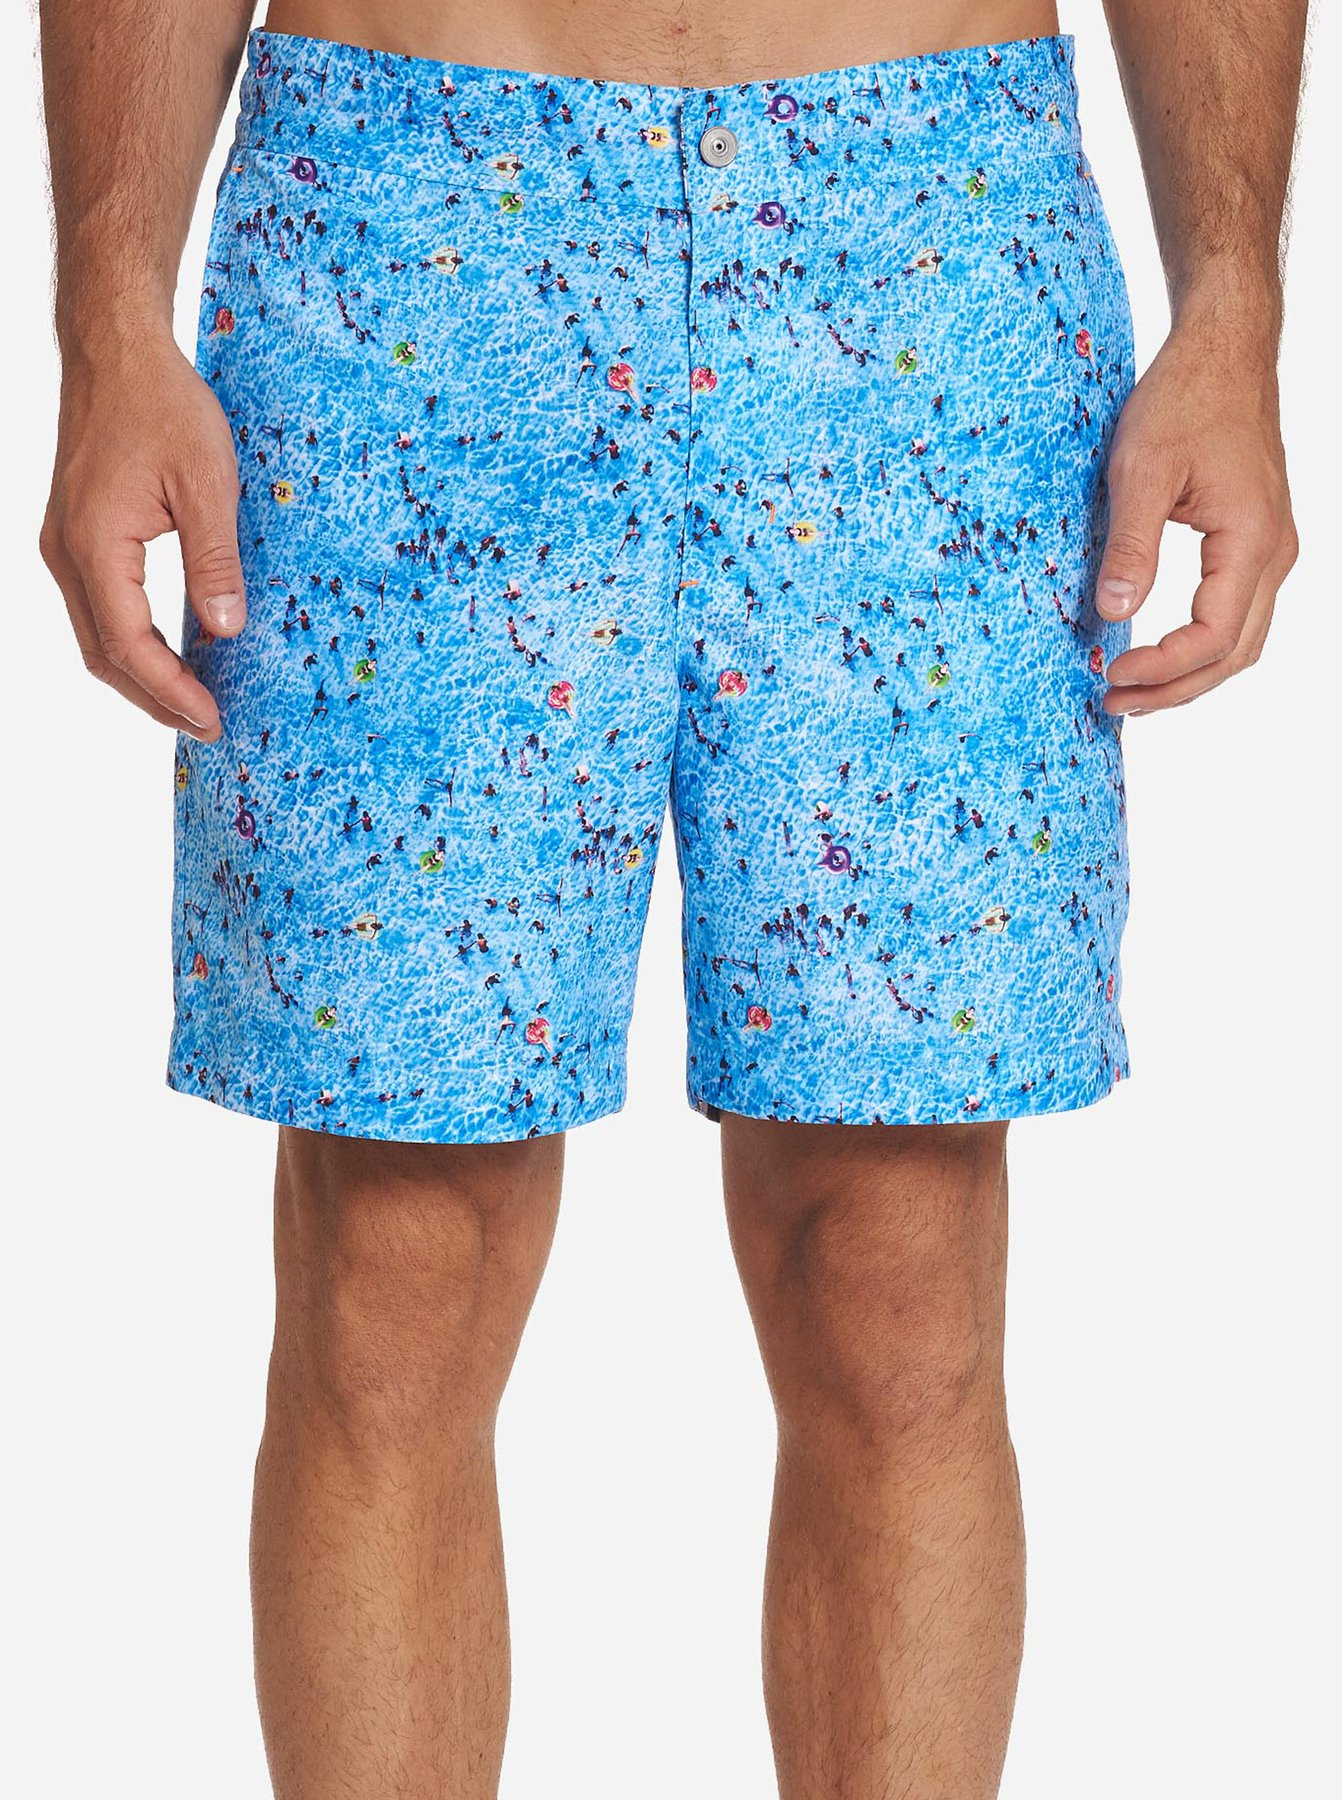 Robert Graham Big Blue Swim Trunk Shorts Sky